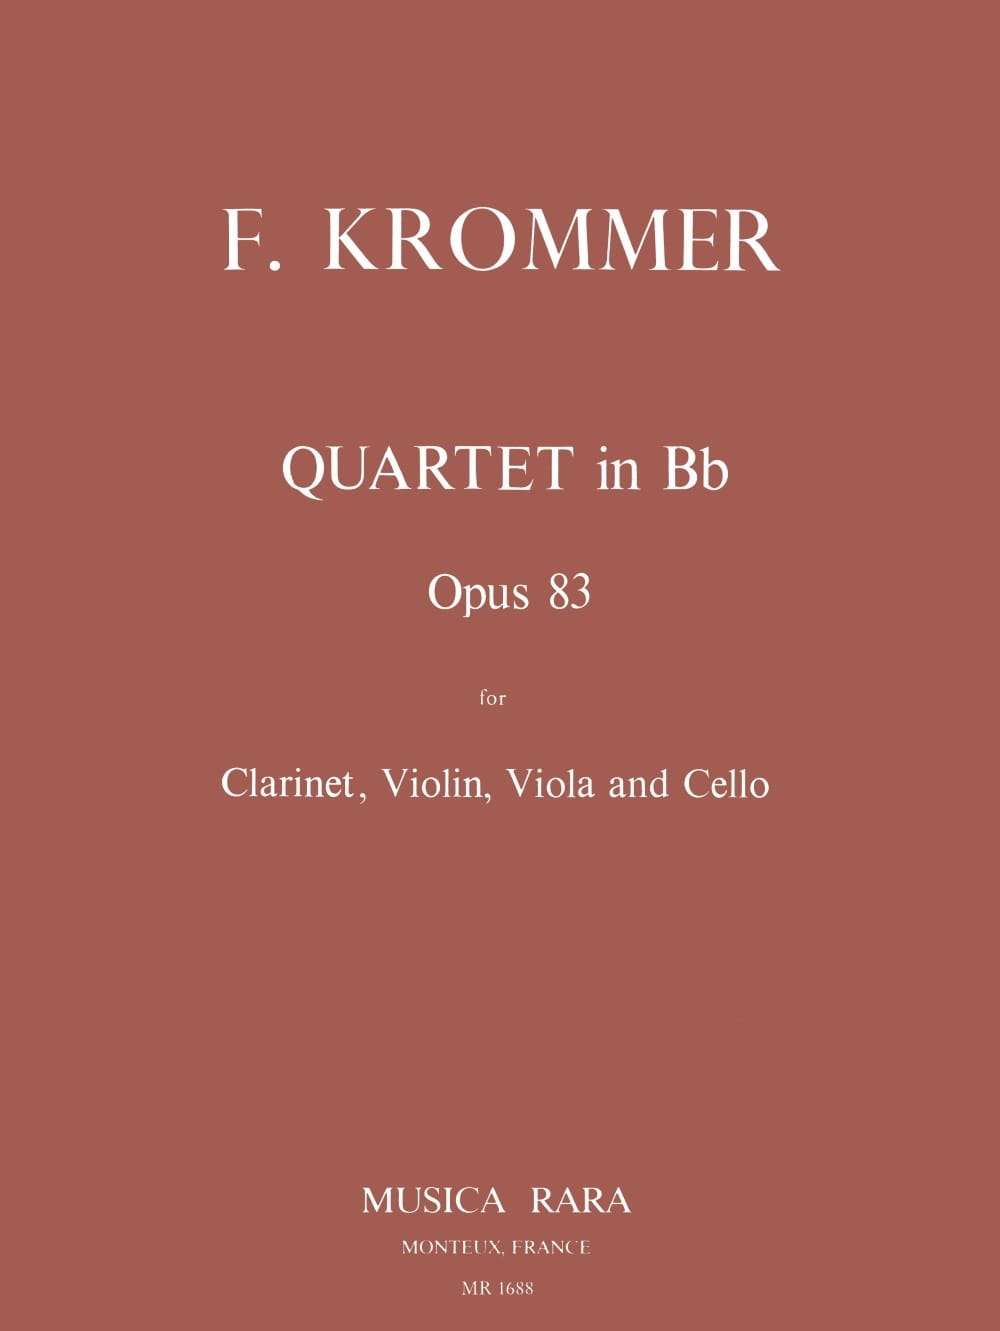 Quartet in Bb op. 83 - Clarinet violin viola cello - Parts - laflutedepan.com